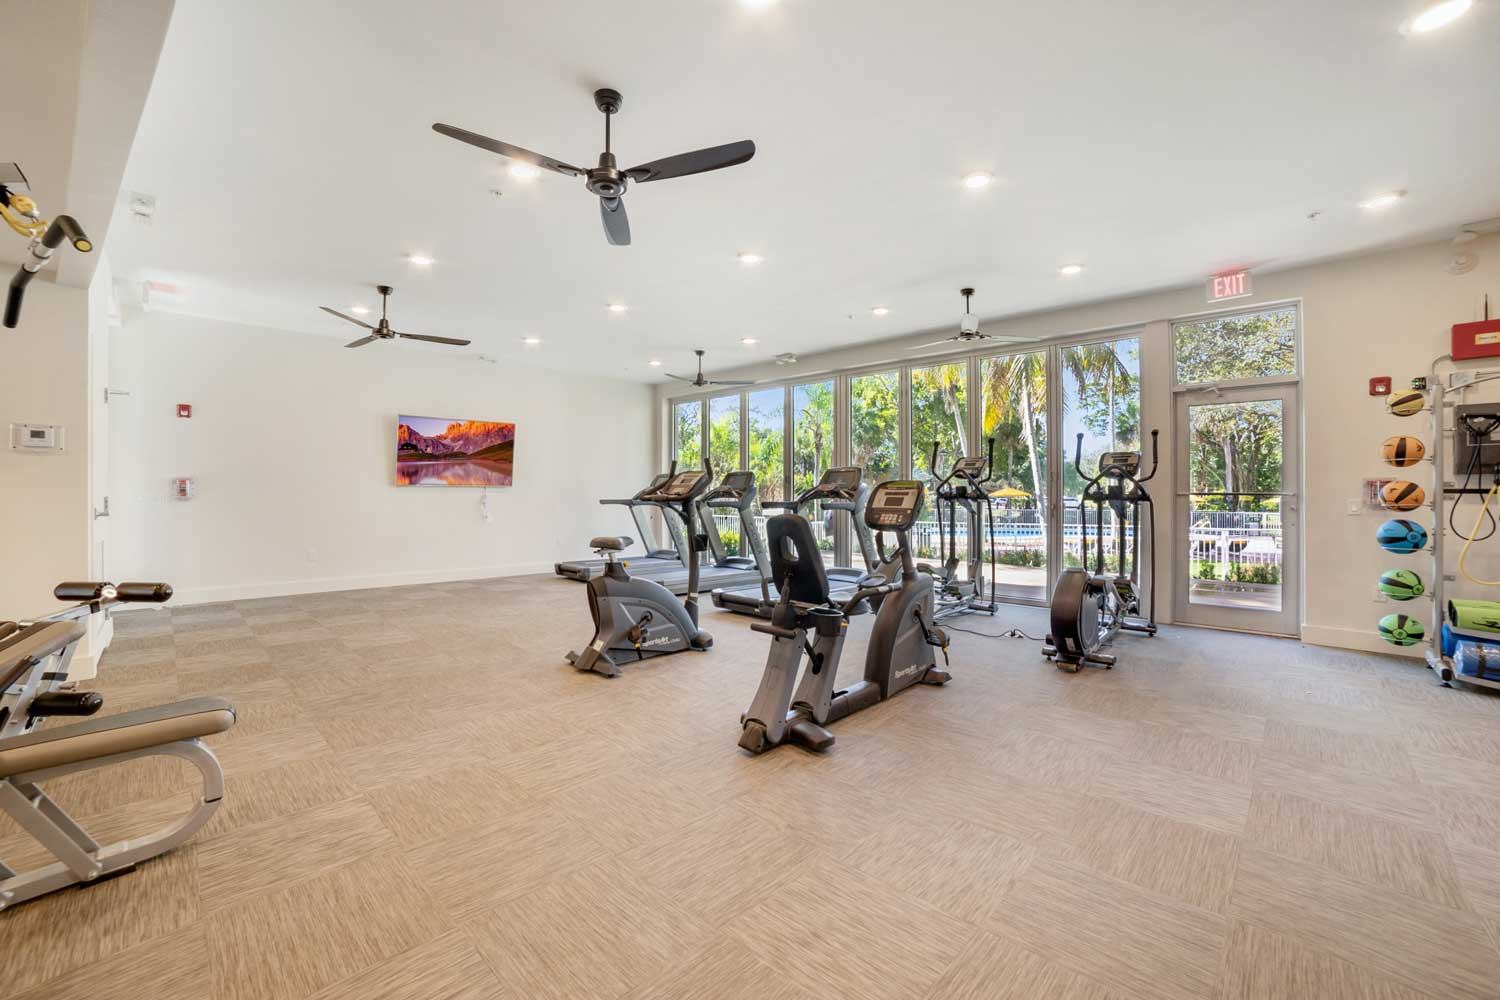 Fitness Center at Nottingham Pine Apartments in Plantation, FL